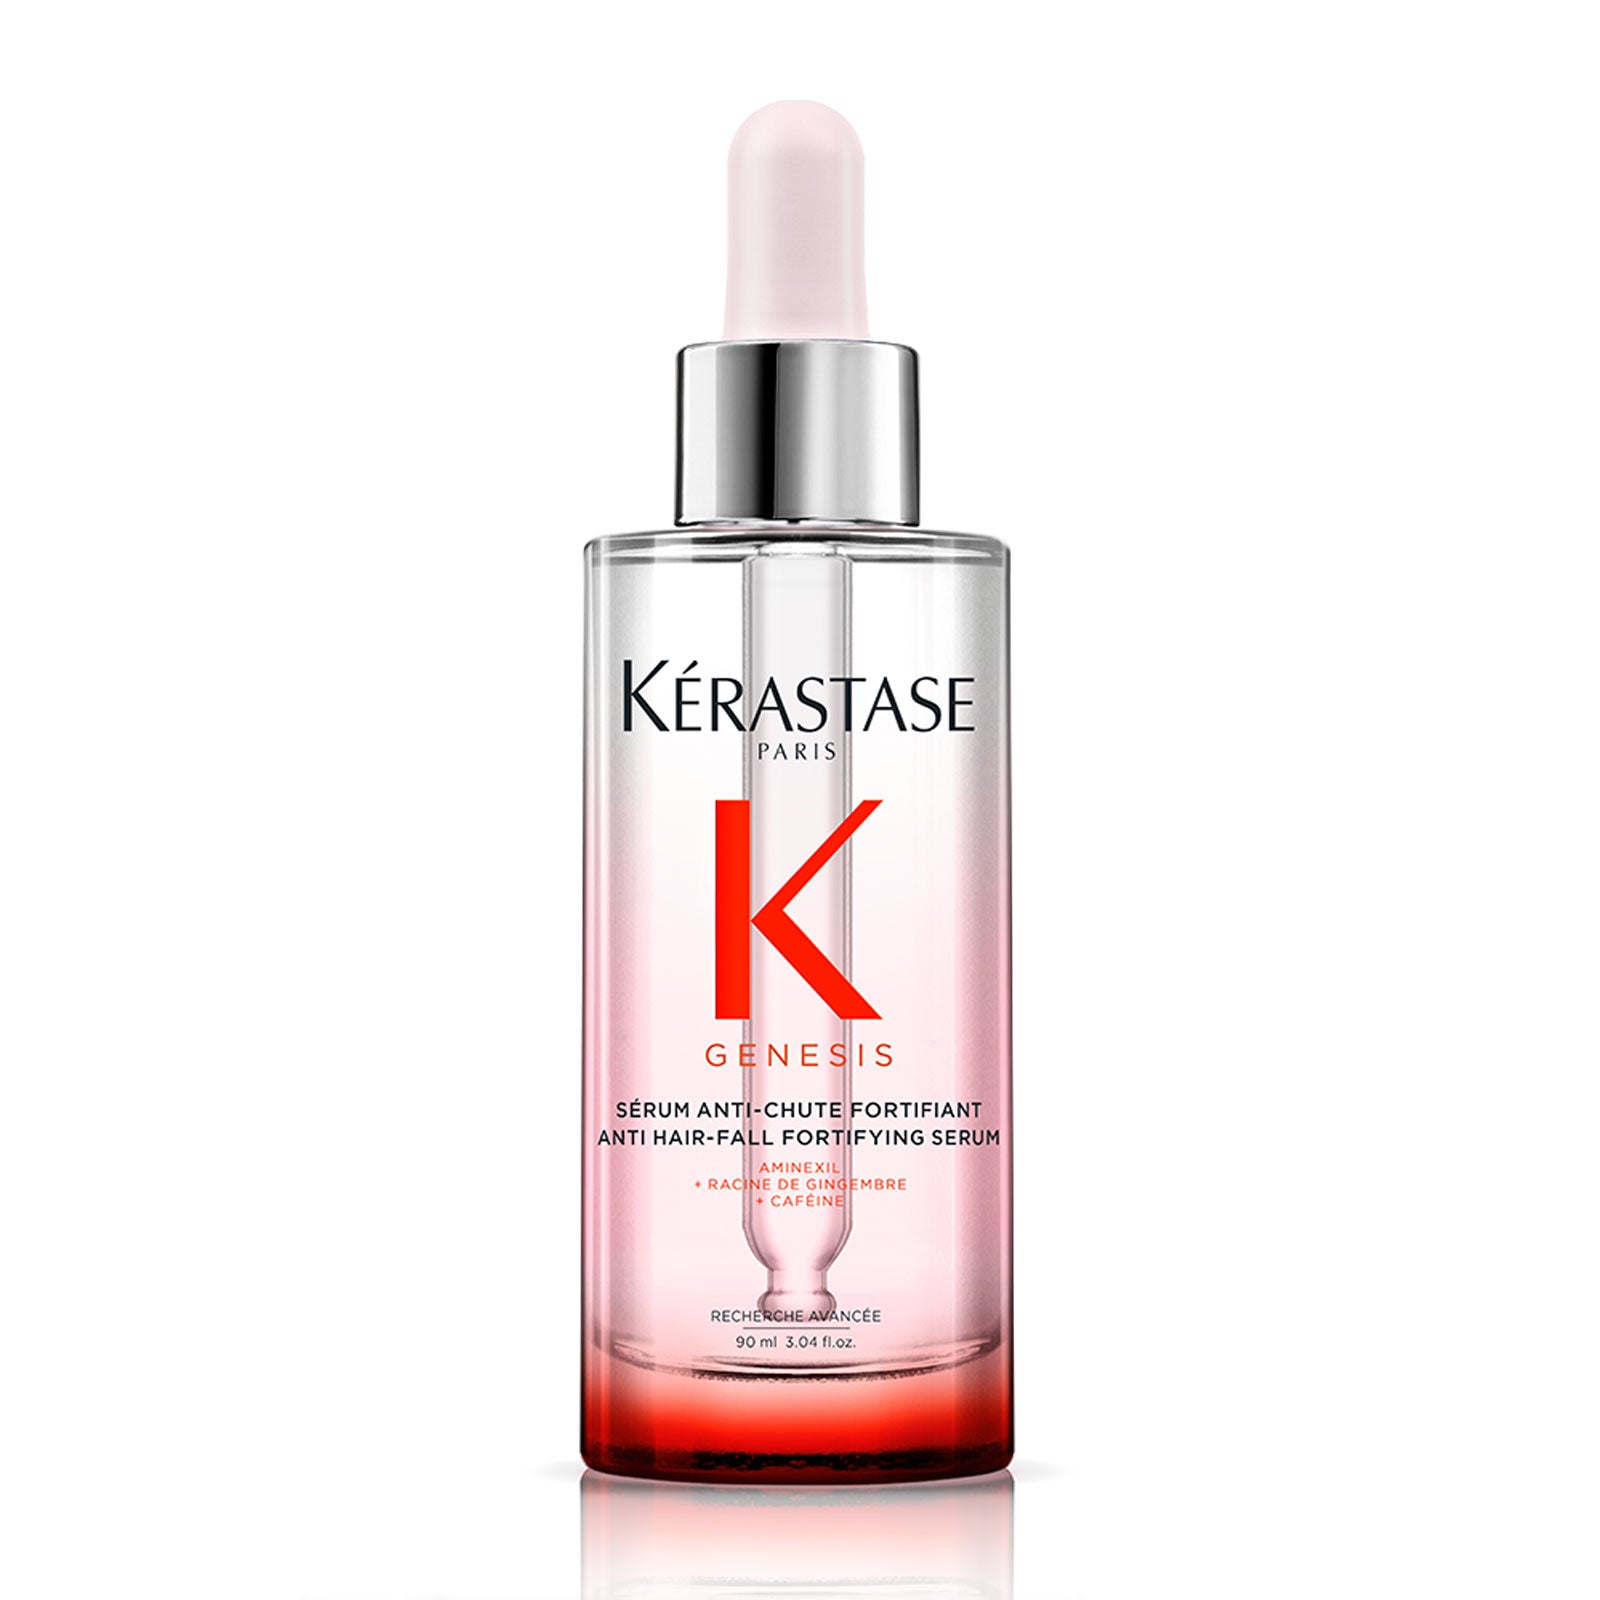 Kérastase Genesis Anti Hair-Fall Fortifying Serum 90ml